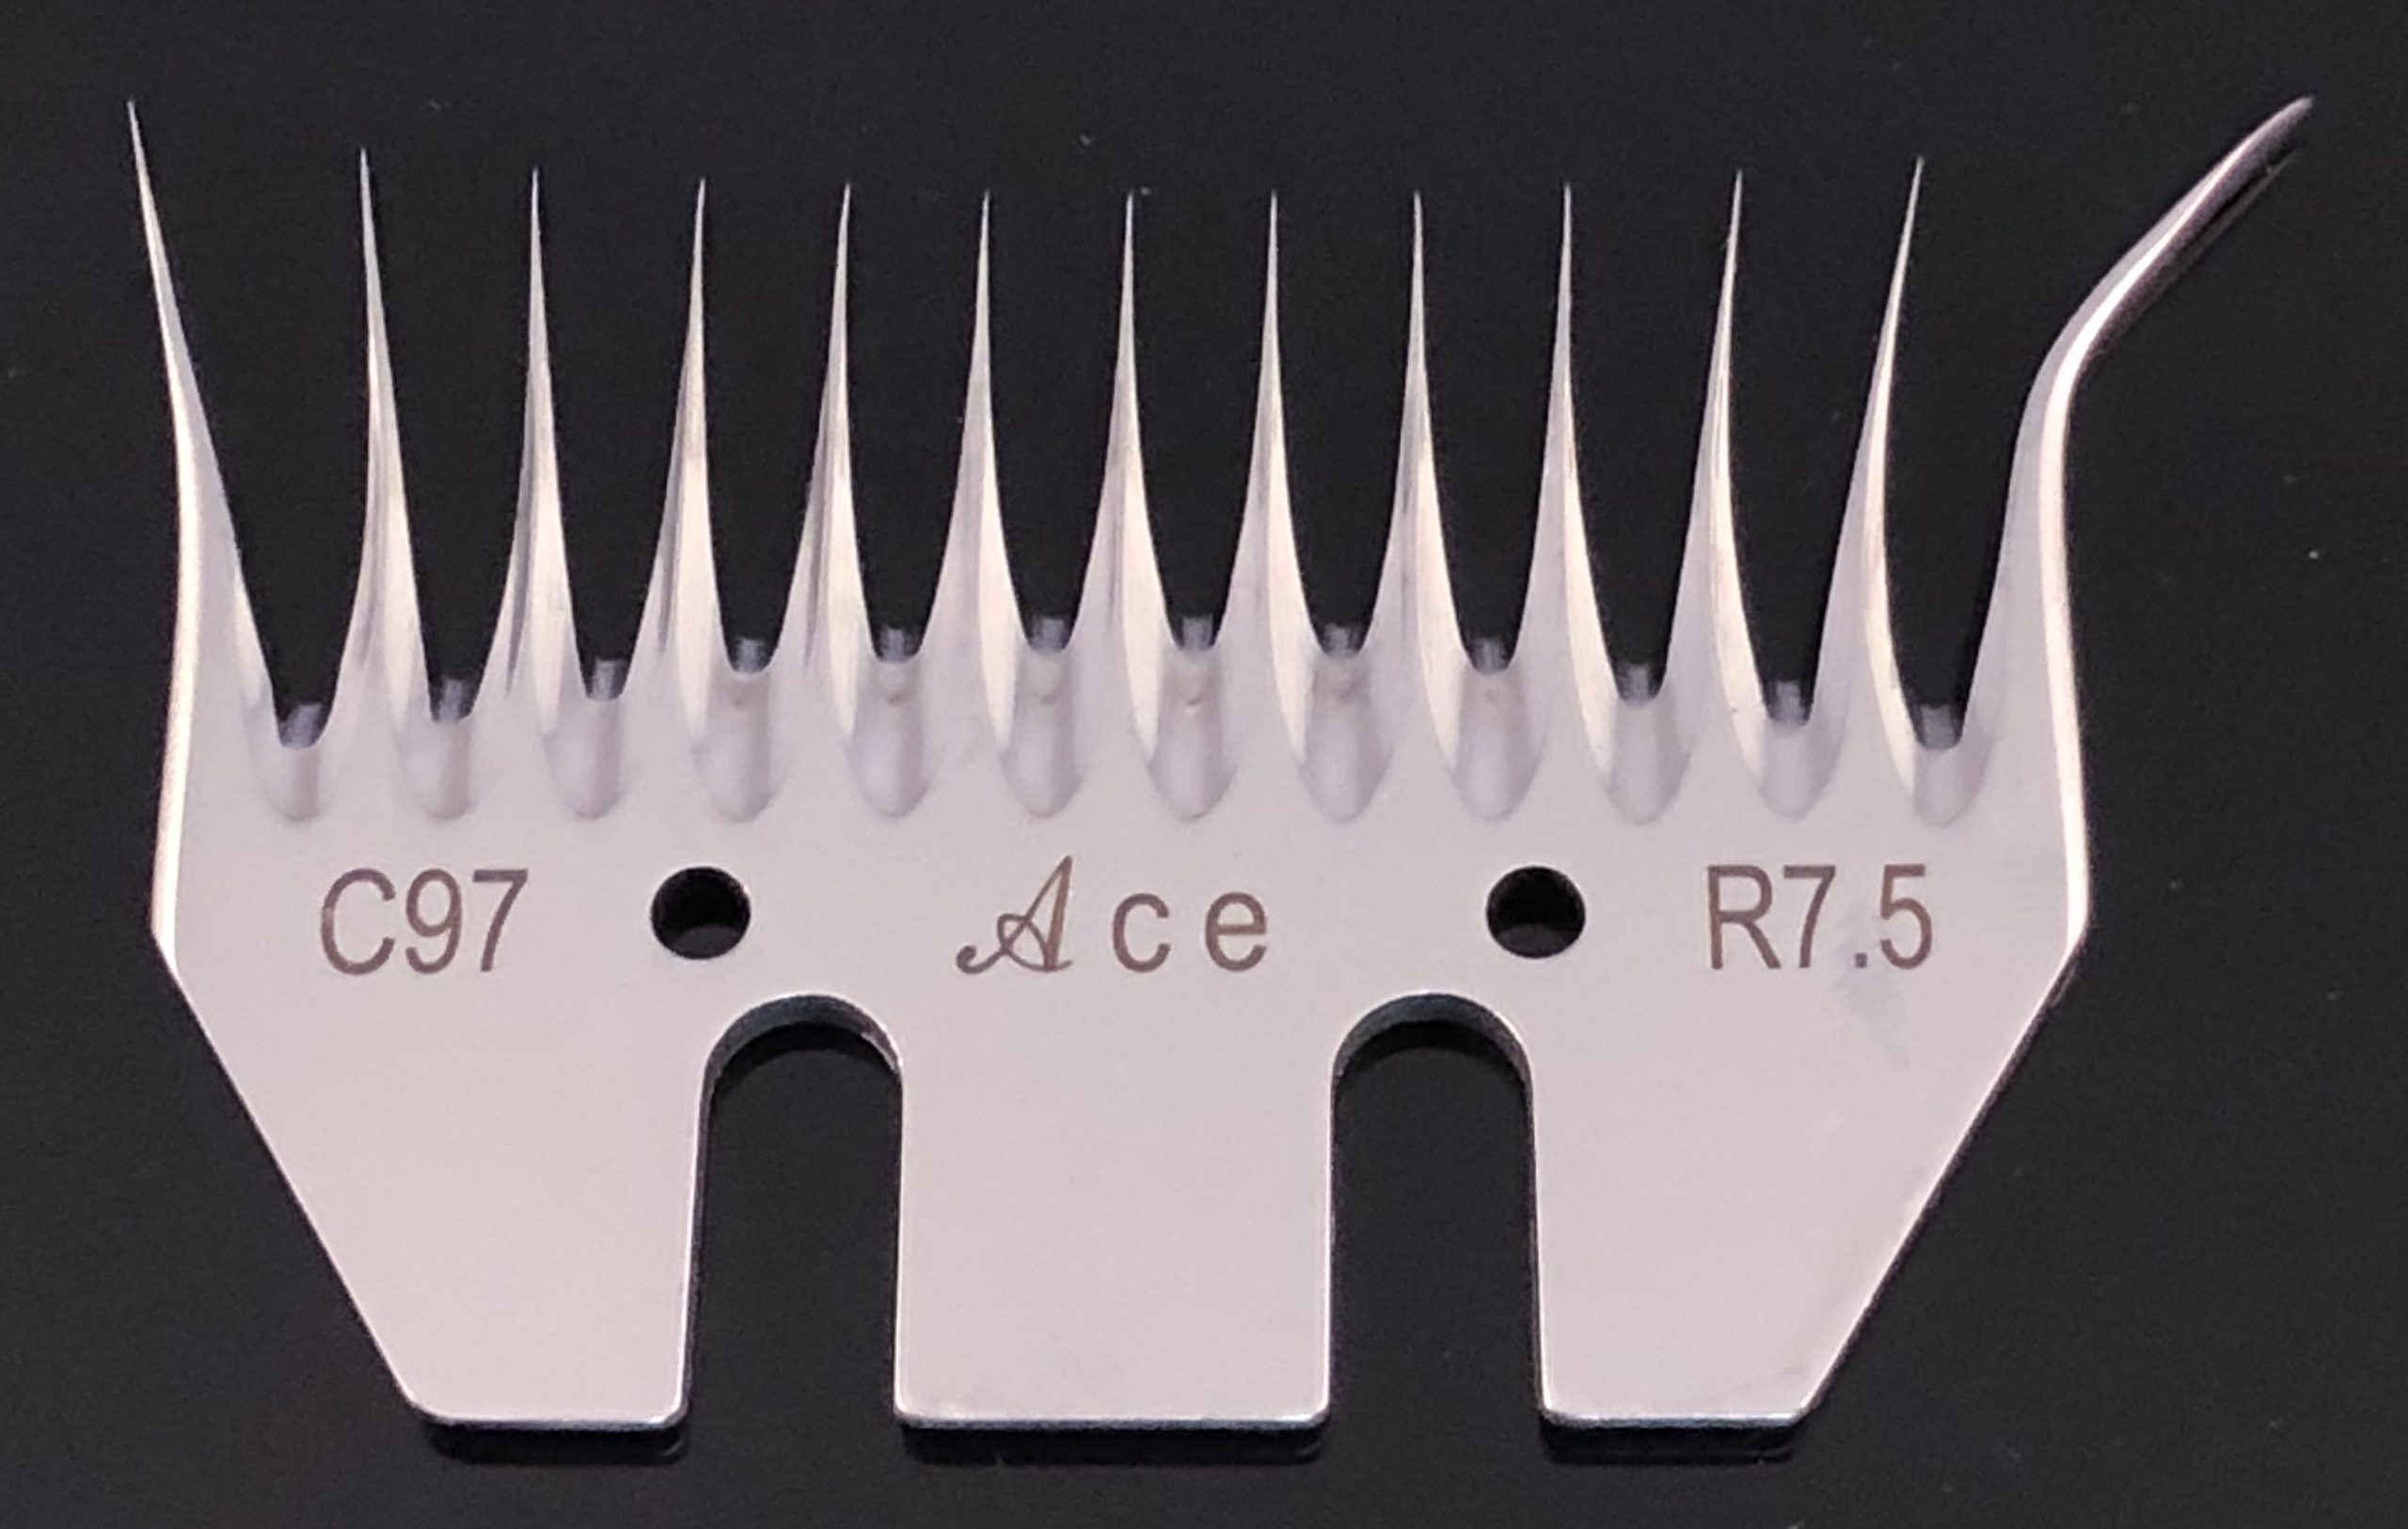 How to Use Ace Shearing Combs? - Learn The Do's and Don'ts of Shearing